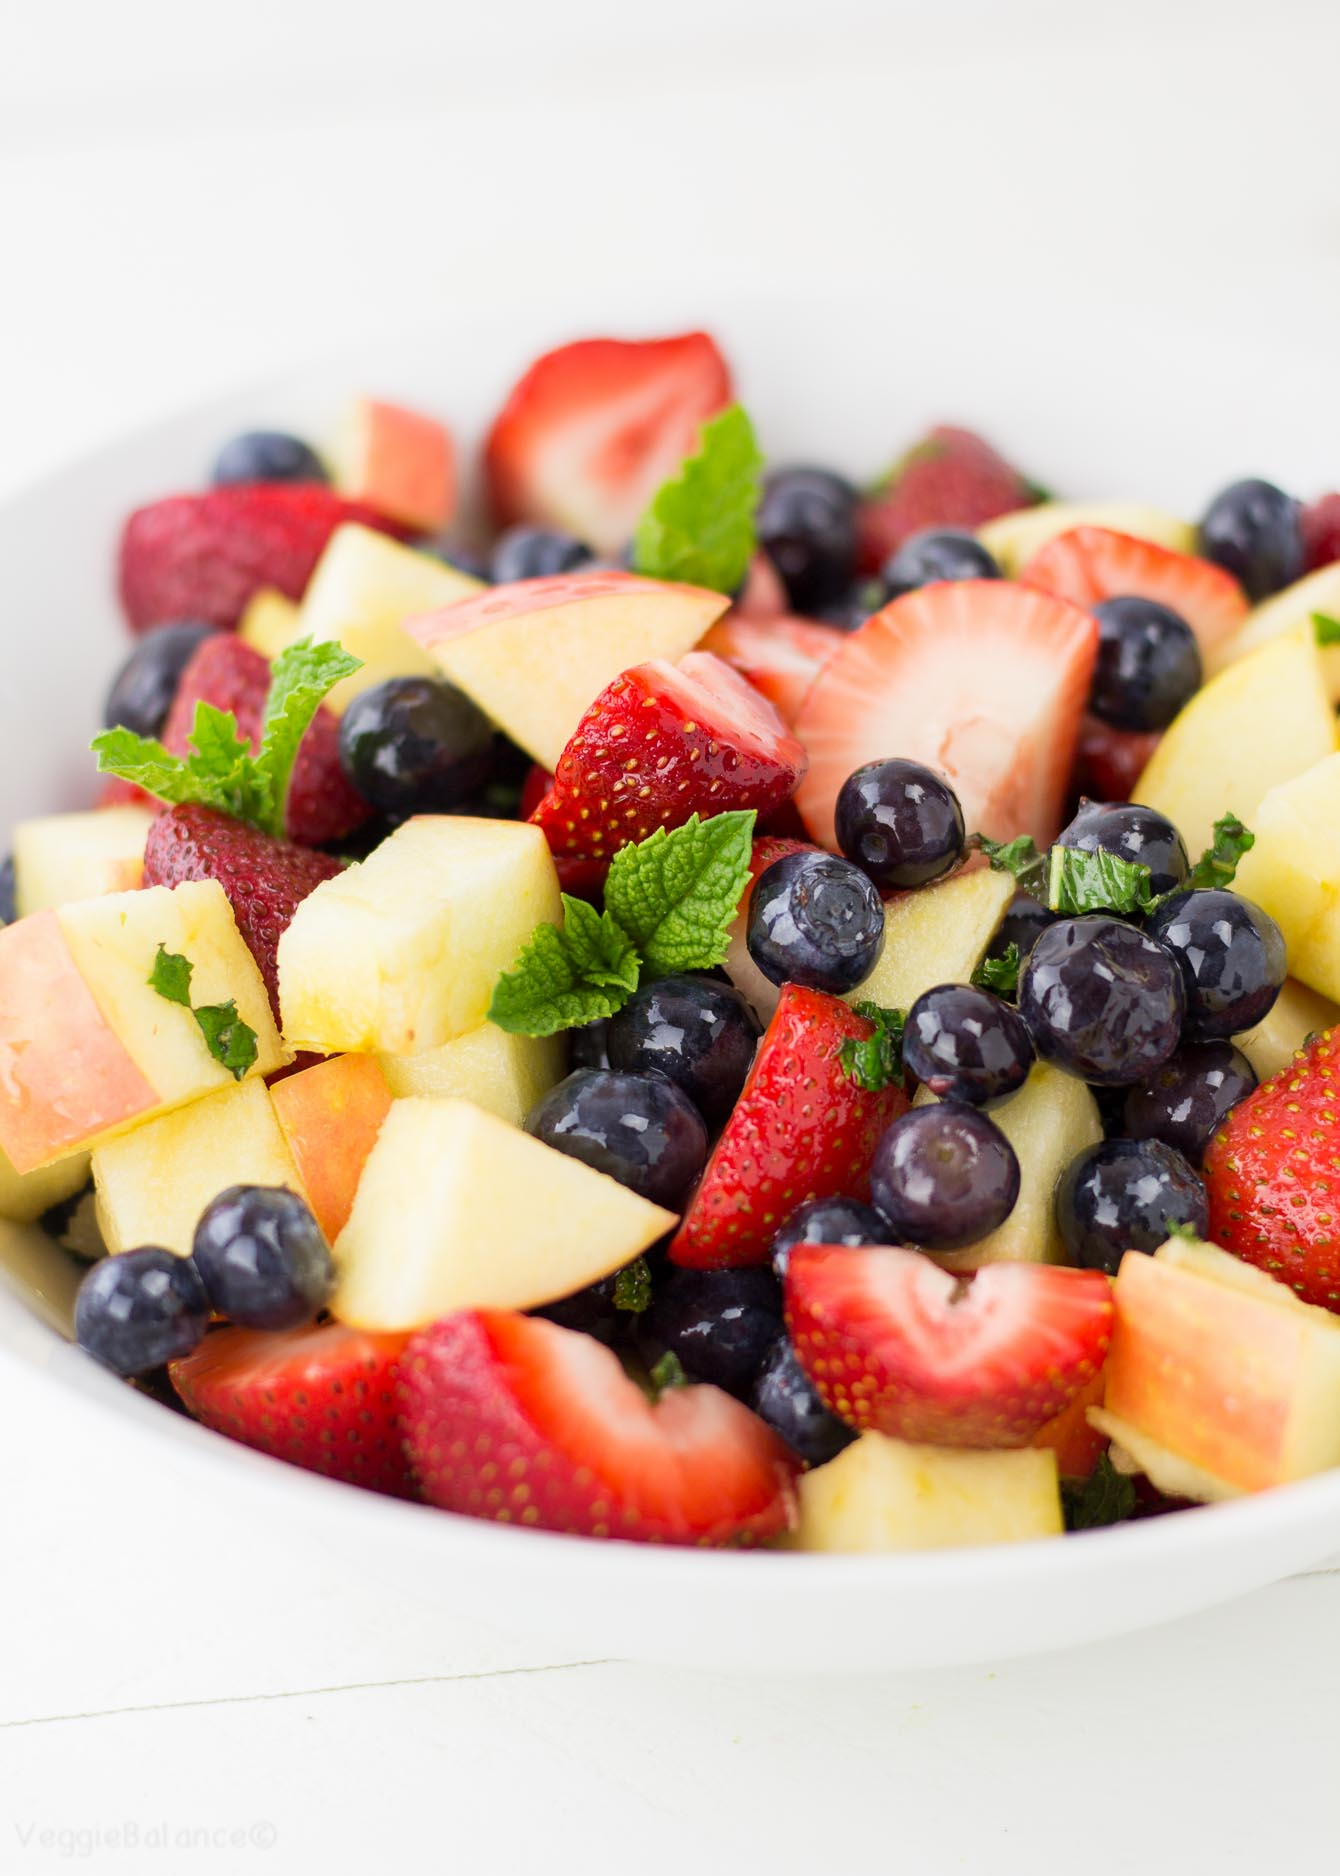 Lemon Mint Fruit Salad (aka The Red, White & Blue Fruit Salad) Gluten Free - Veggiebalance.com